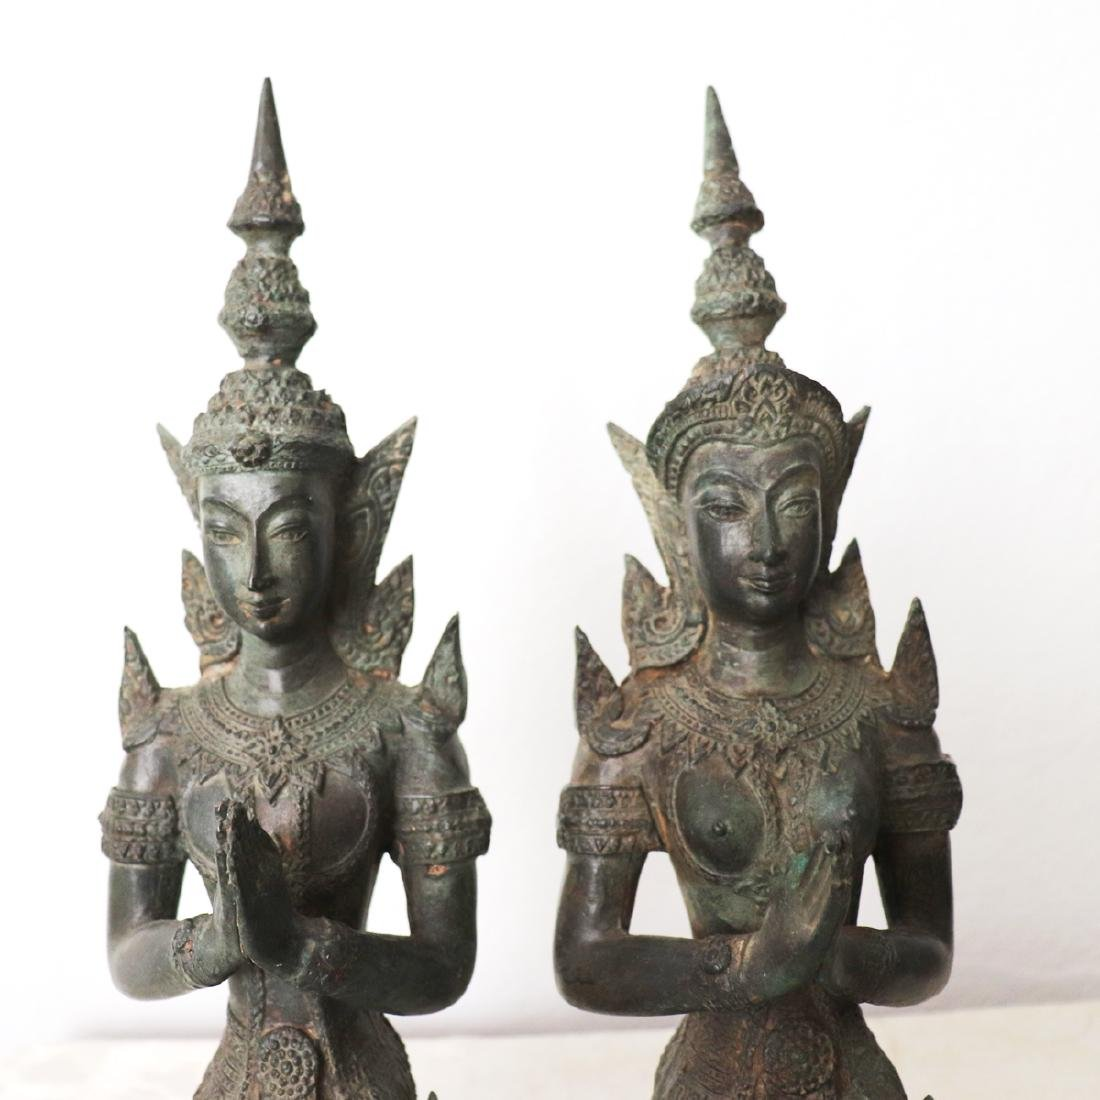 Khmer Royal Pairs of Guardian Angle Statue 12th Century - 4